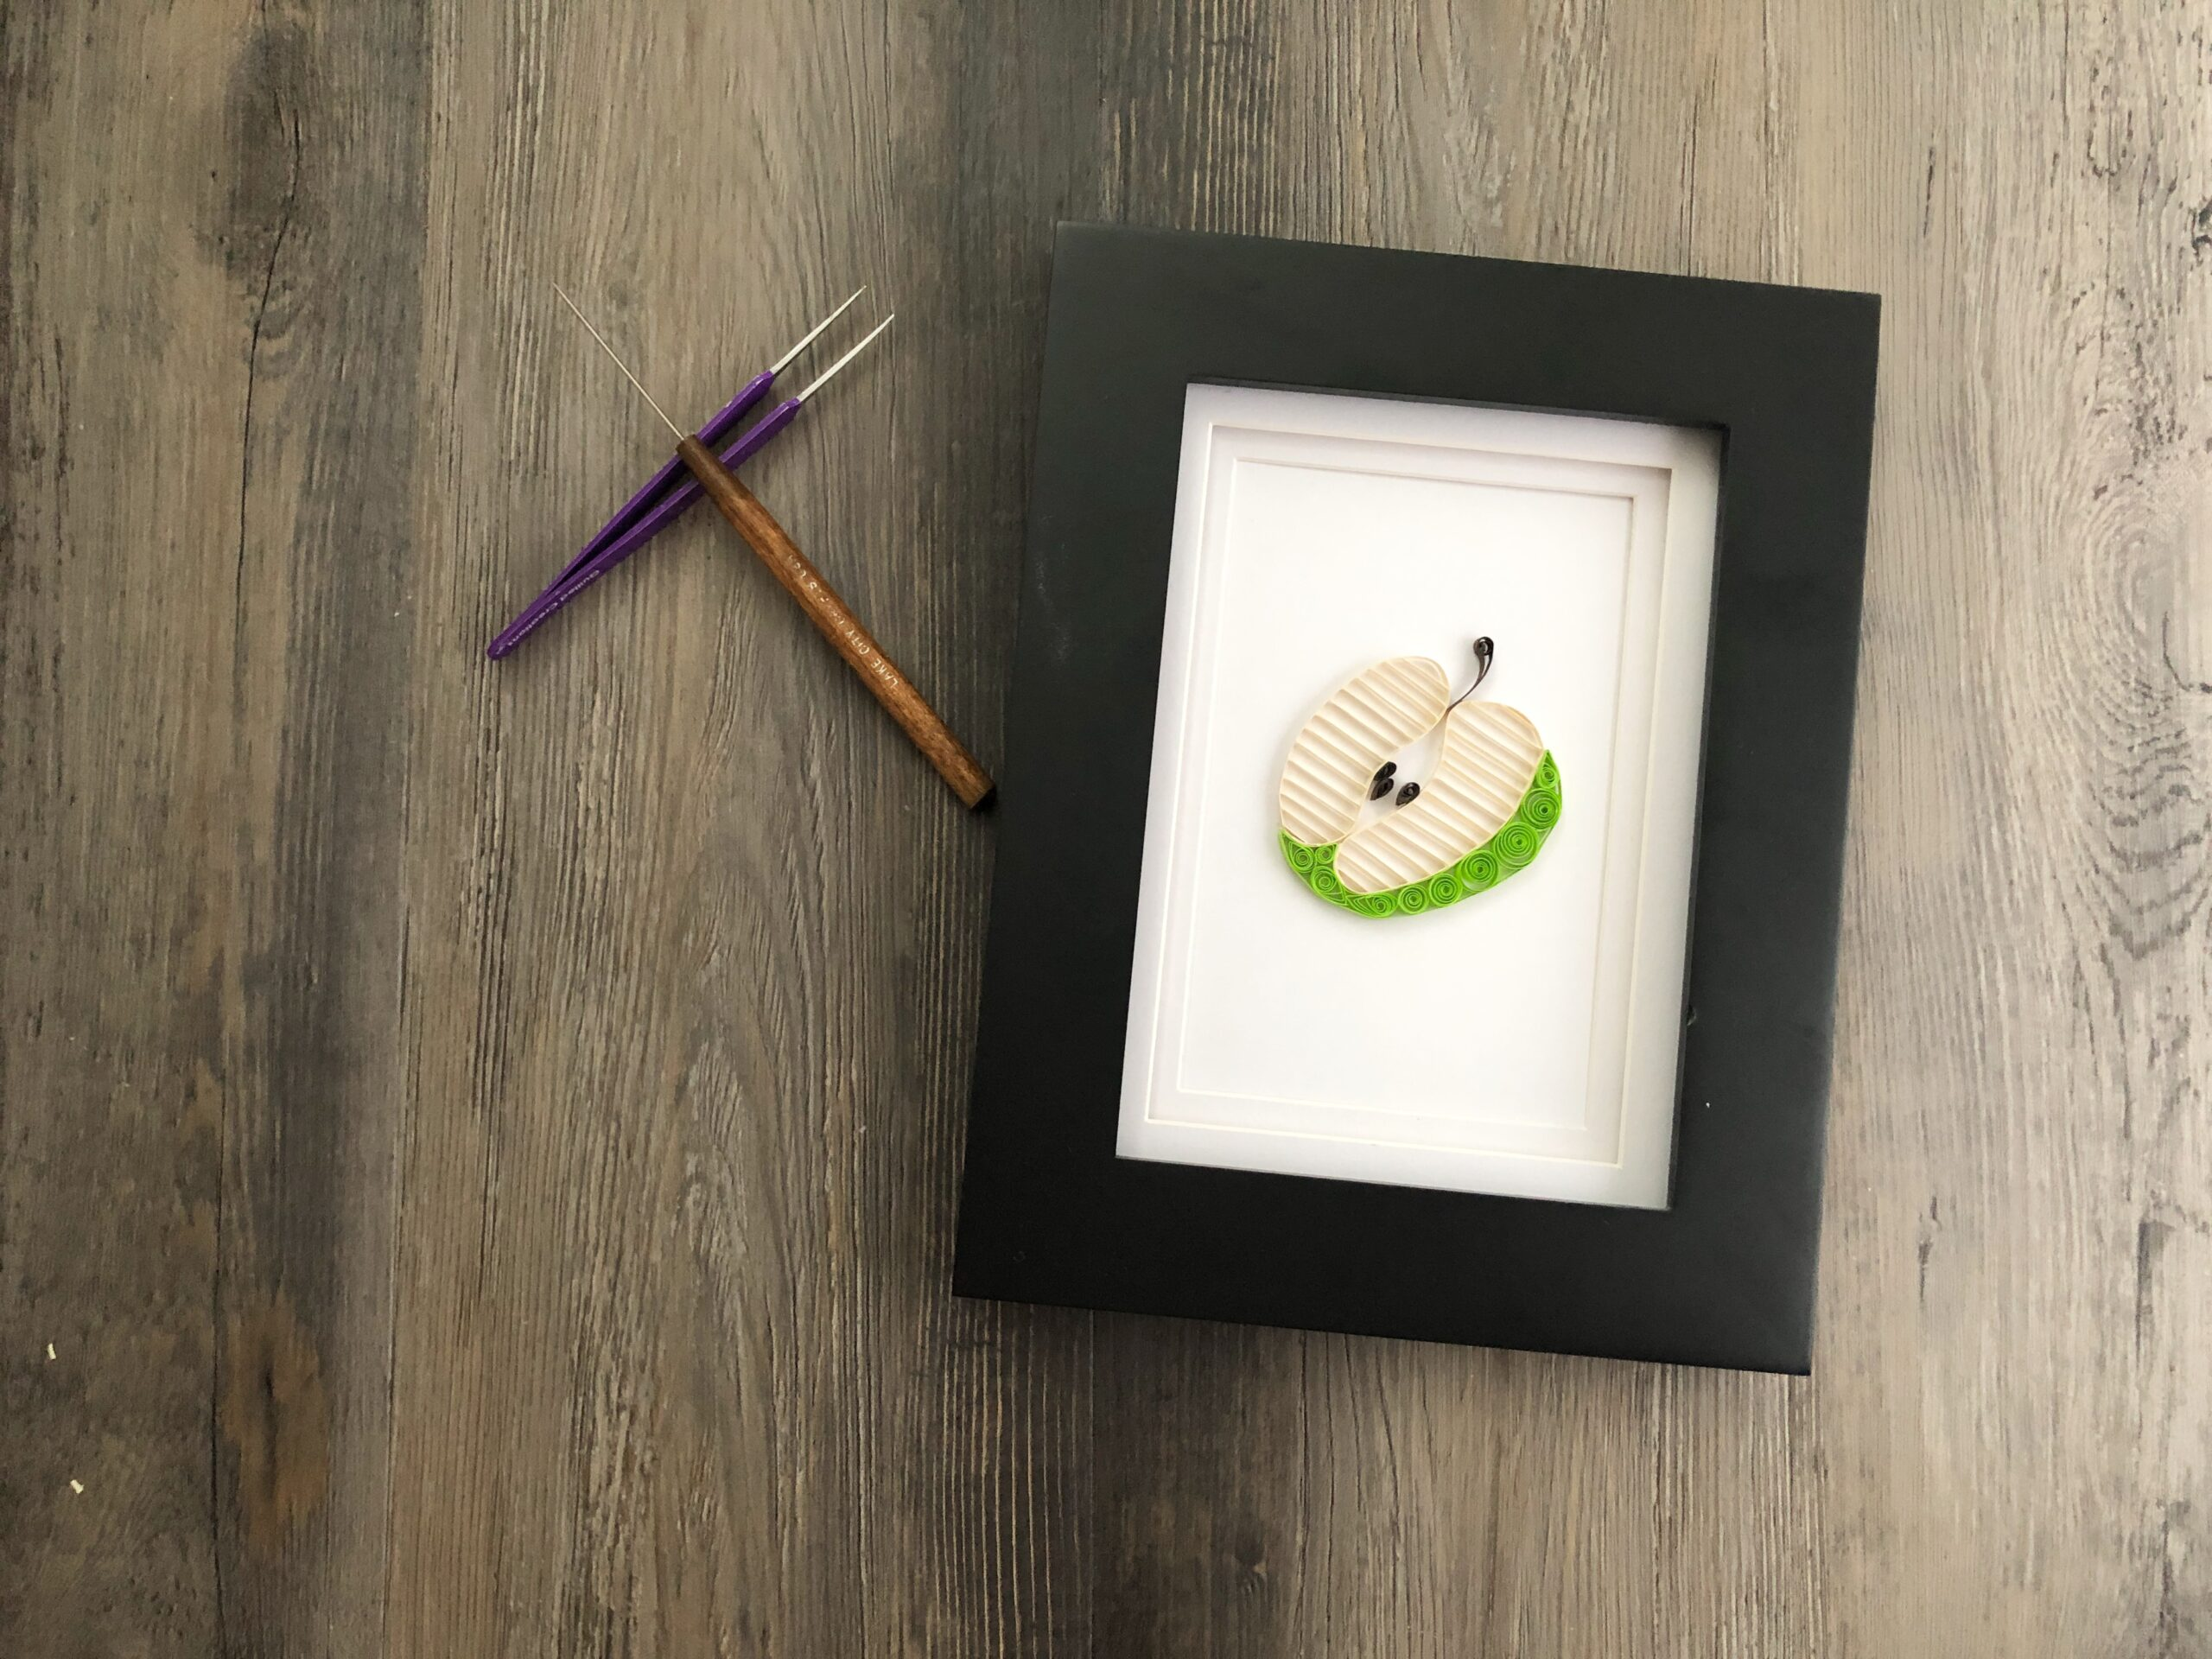 quilling paper apple in frame with quilling tools